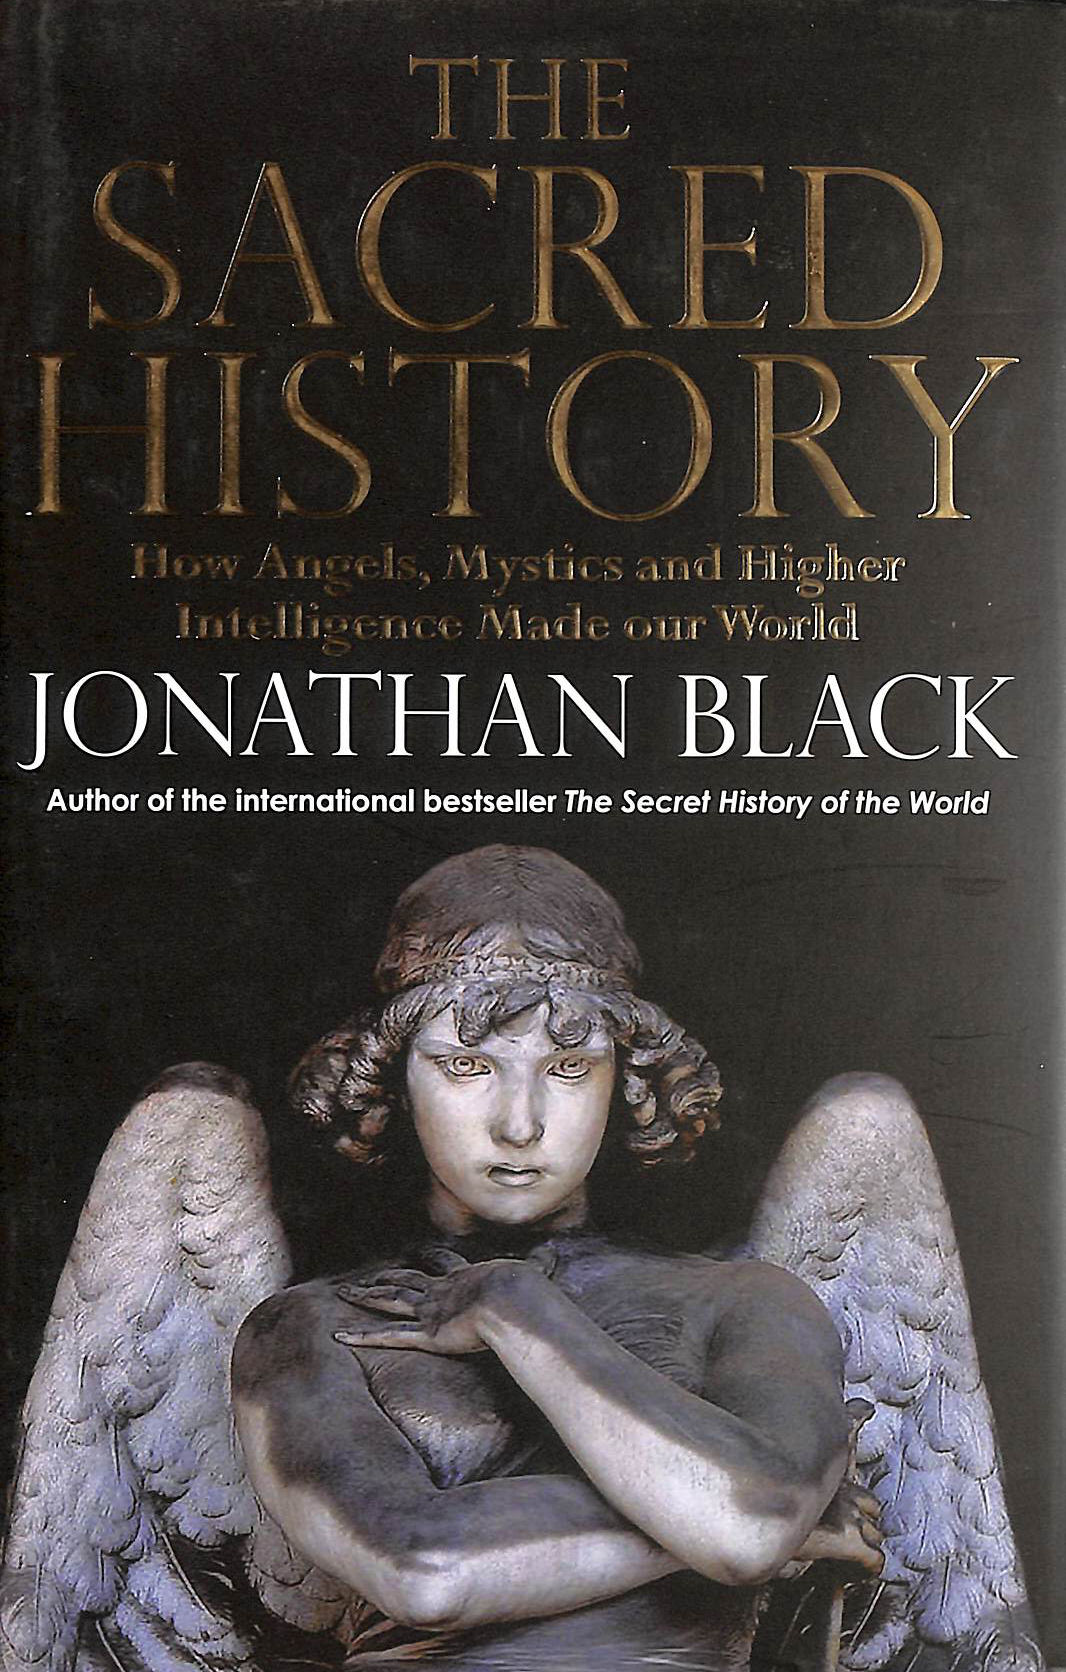 Image for The Sacred History: How Angels, Mystics and Higher Intelligence Made Our World